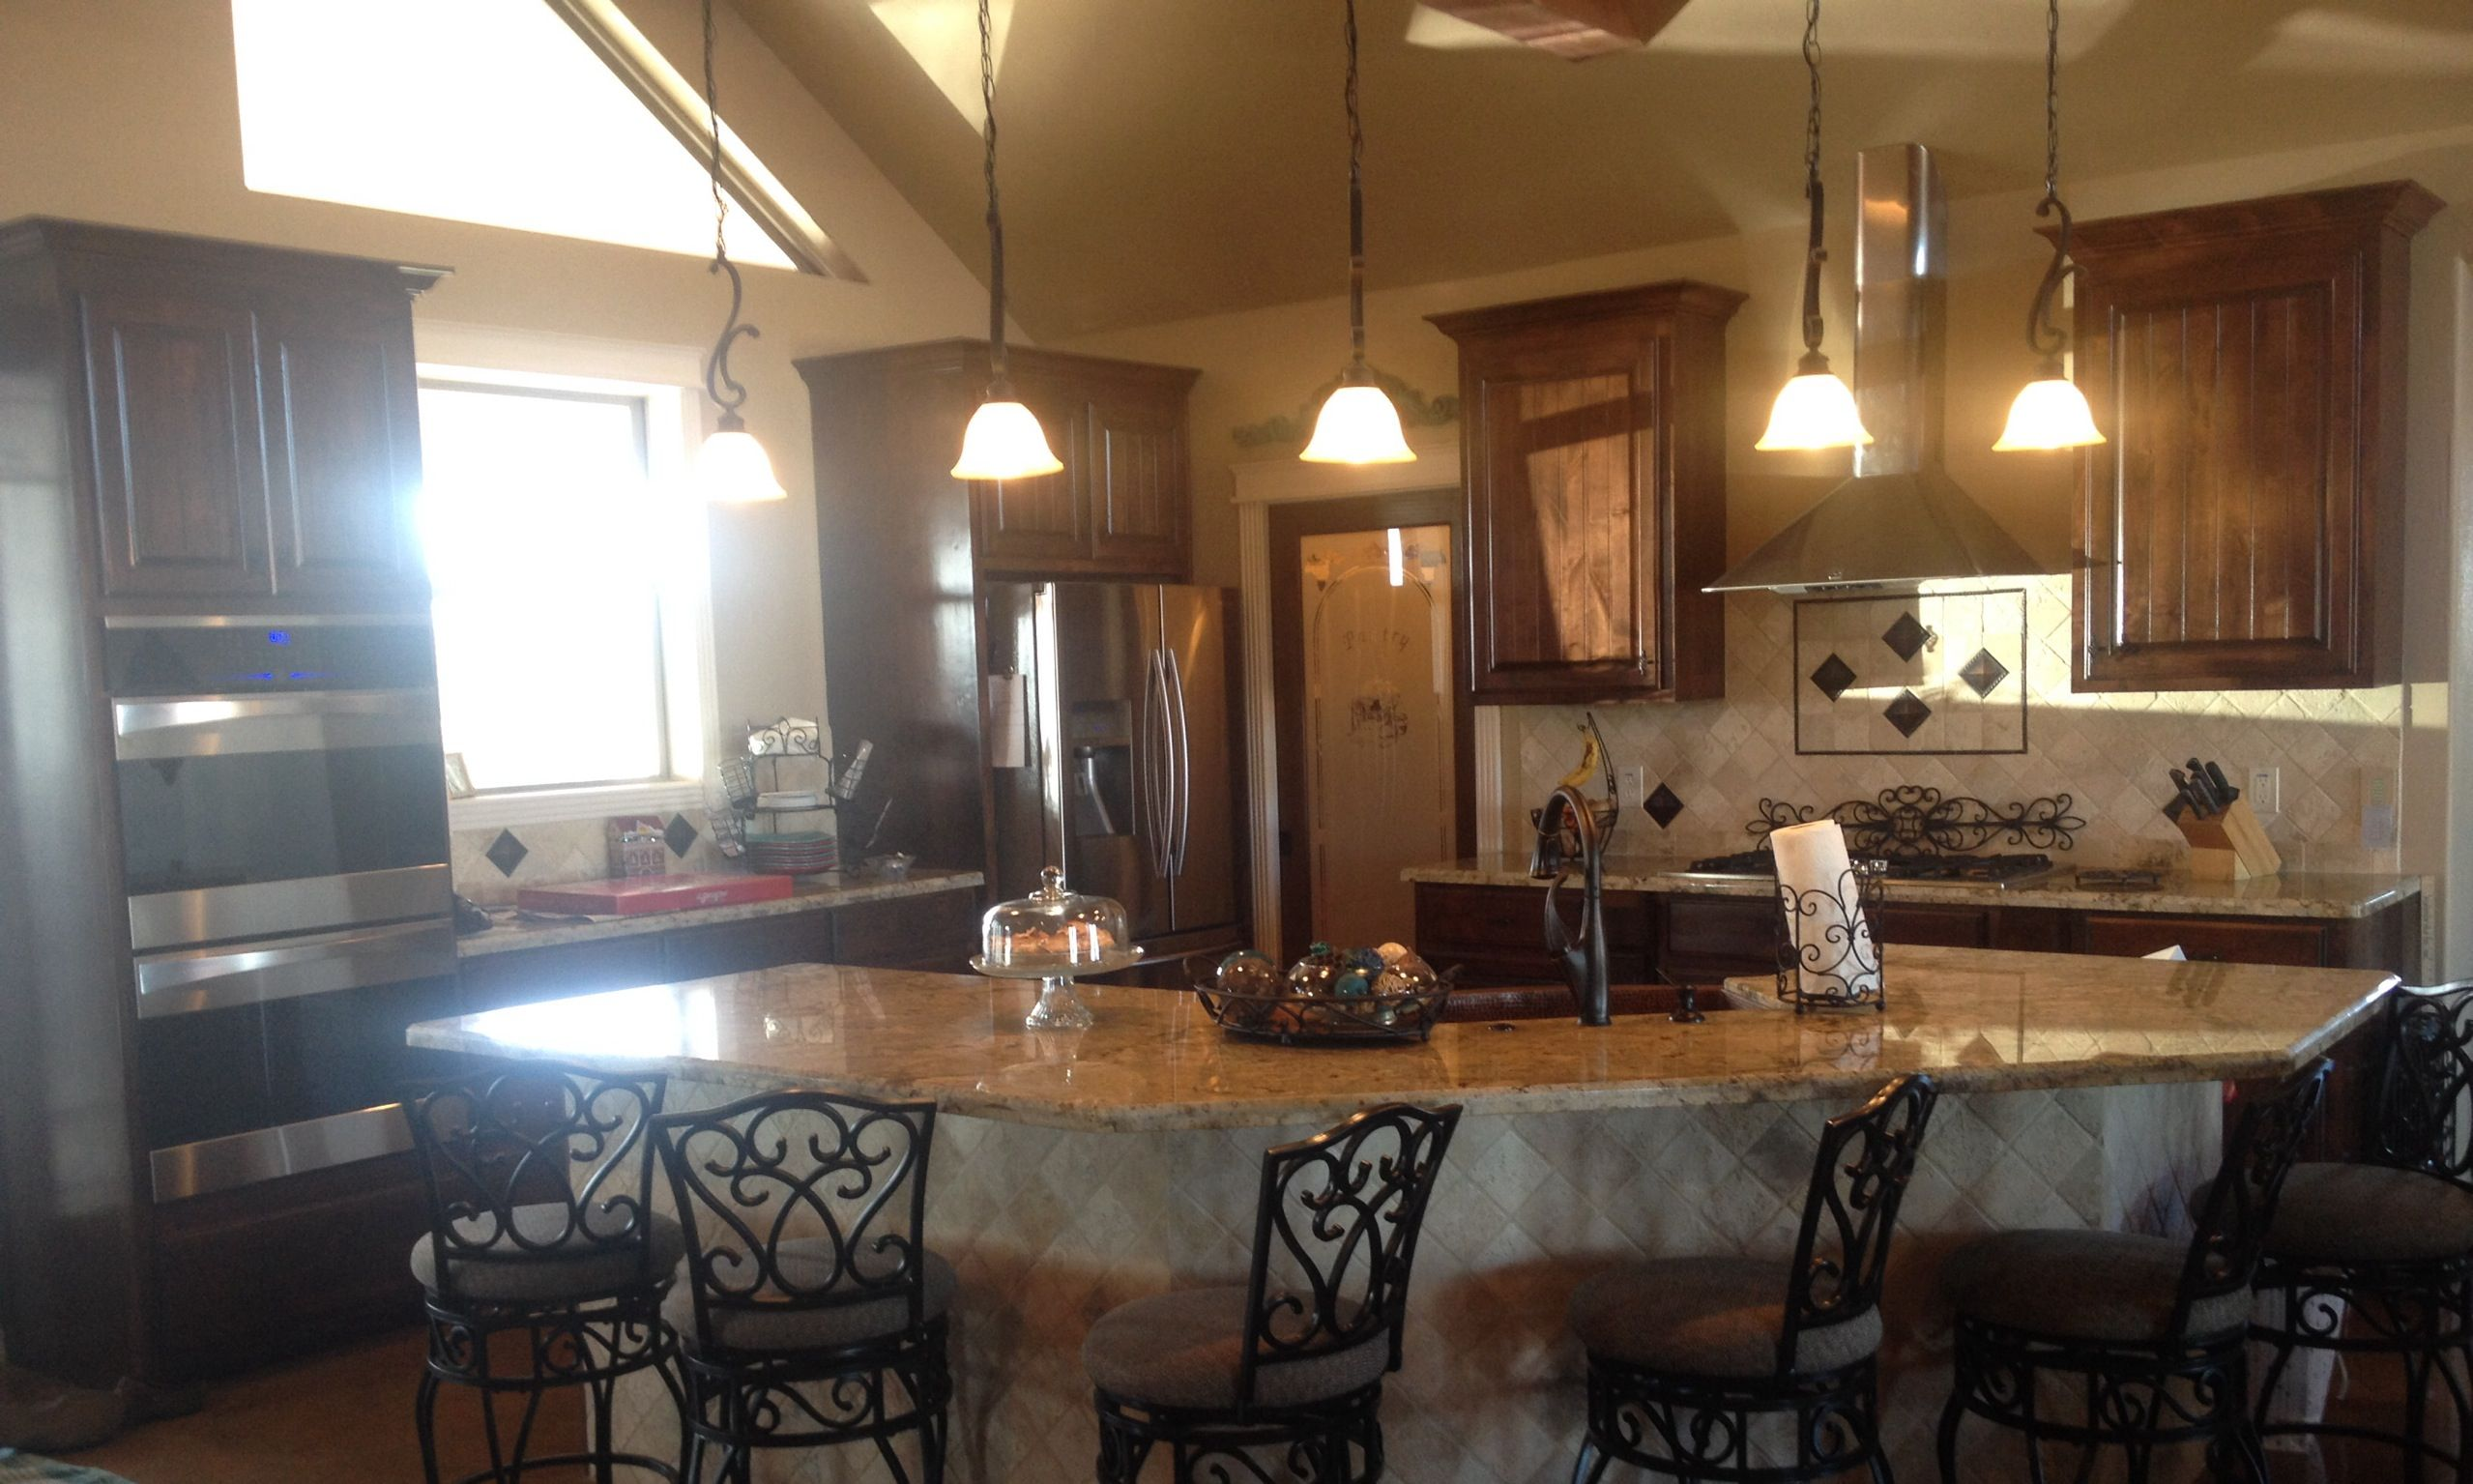 Kitchen open floor plan cathedral ceiling pendant lights glass